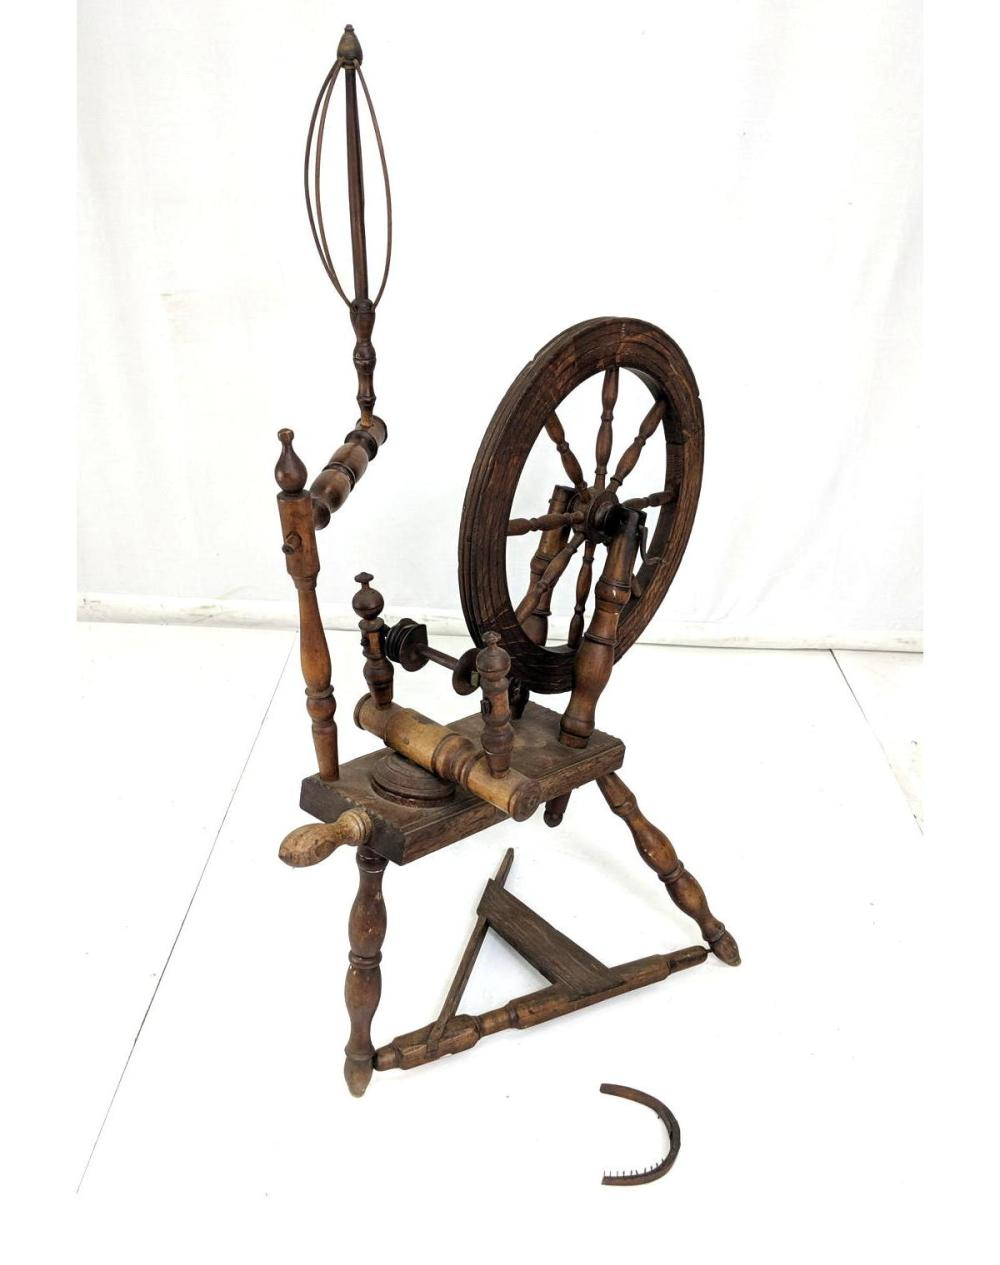 Sold Price Antique Spinning Wheel And Accessories June 2 0119 1 00 Pm Edt